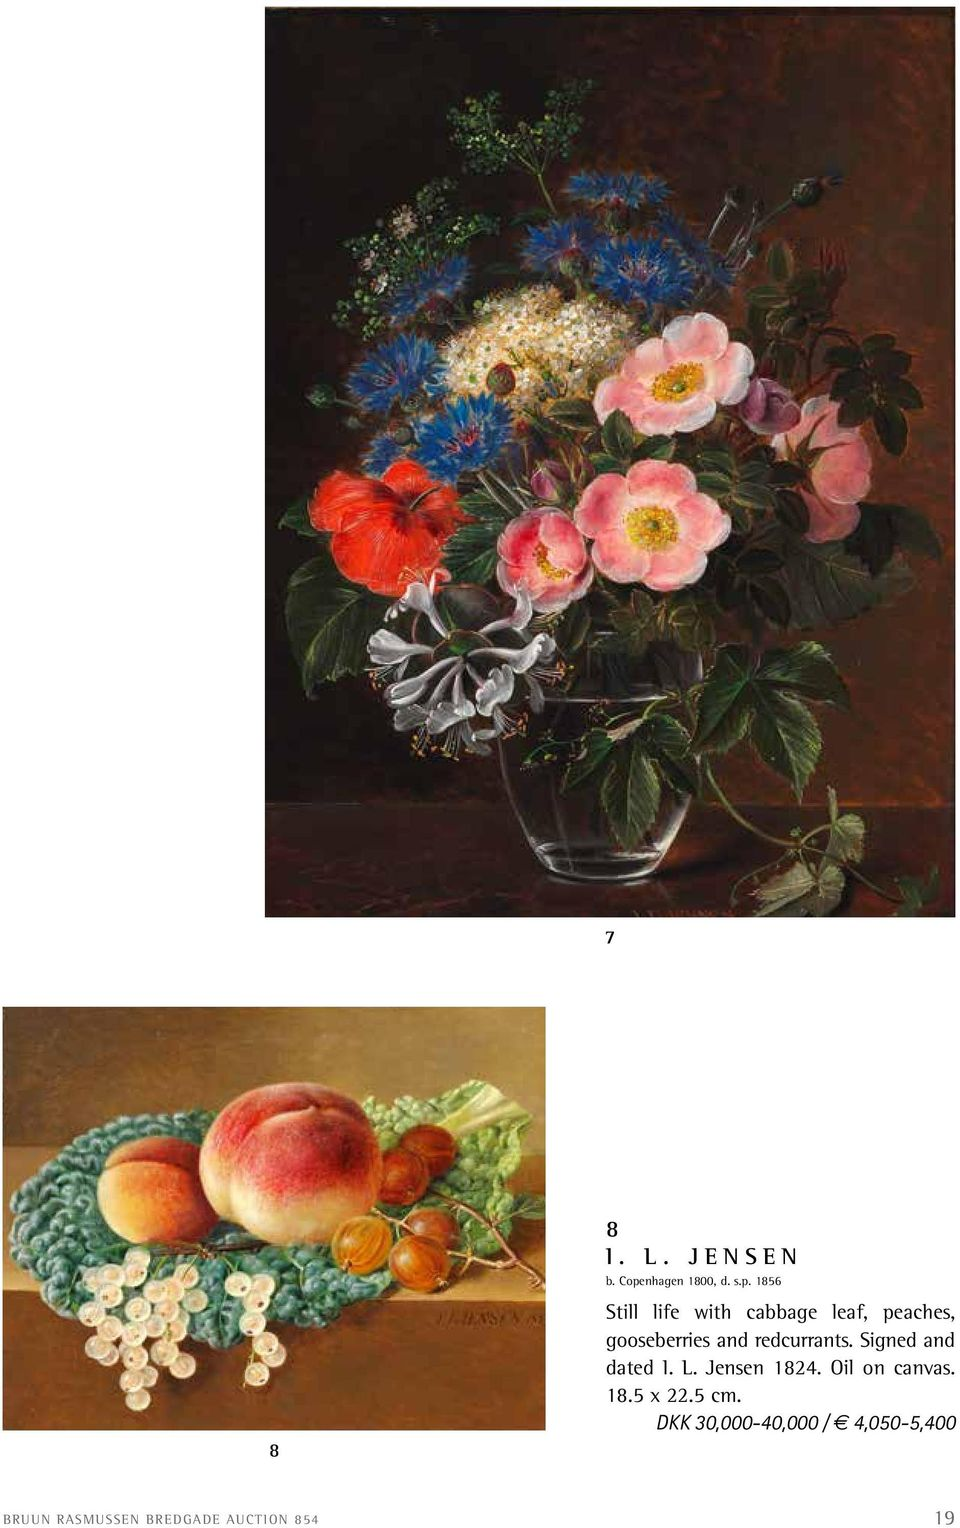 1856 Still life with cabbage leaf, peaches, gooseberries and